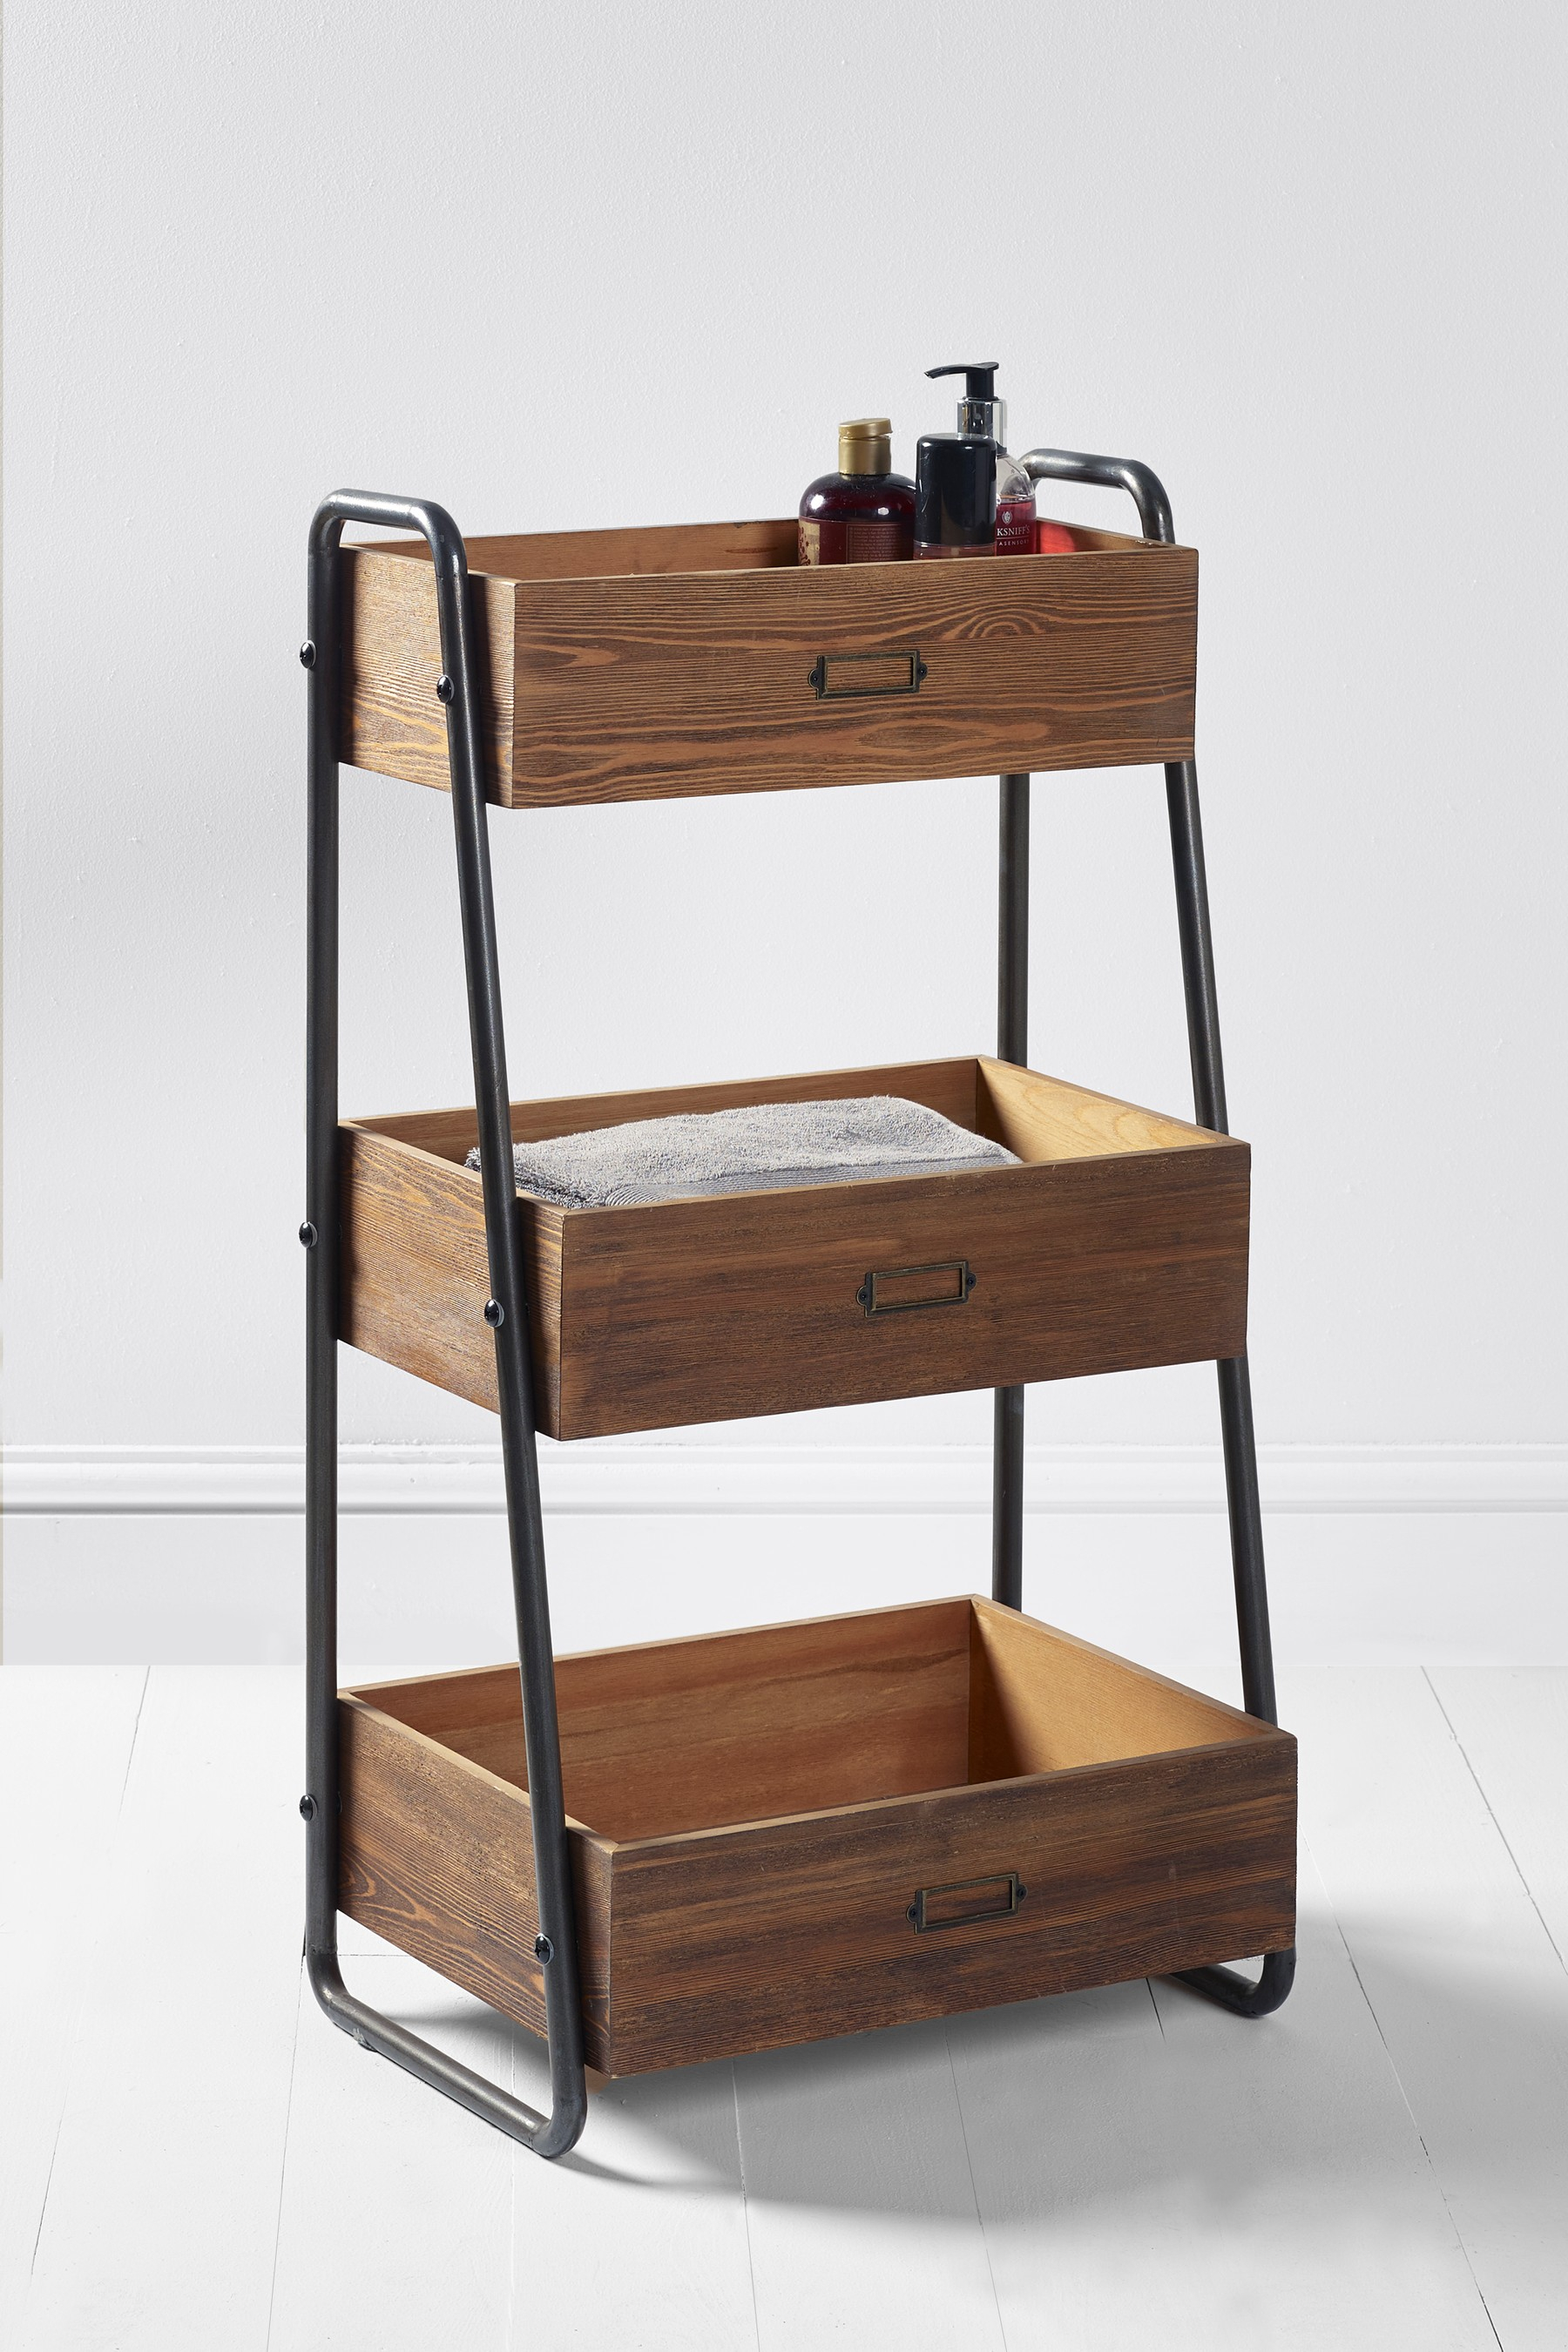 Next Hudson Tiered Caddy Natural Products Wooden regarding proportions 1800 X 2700